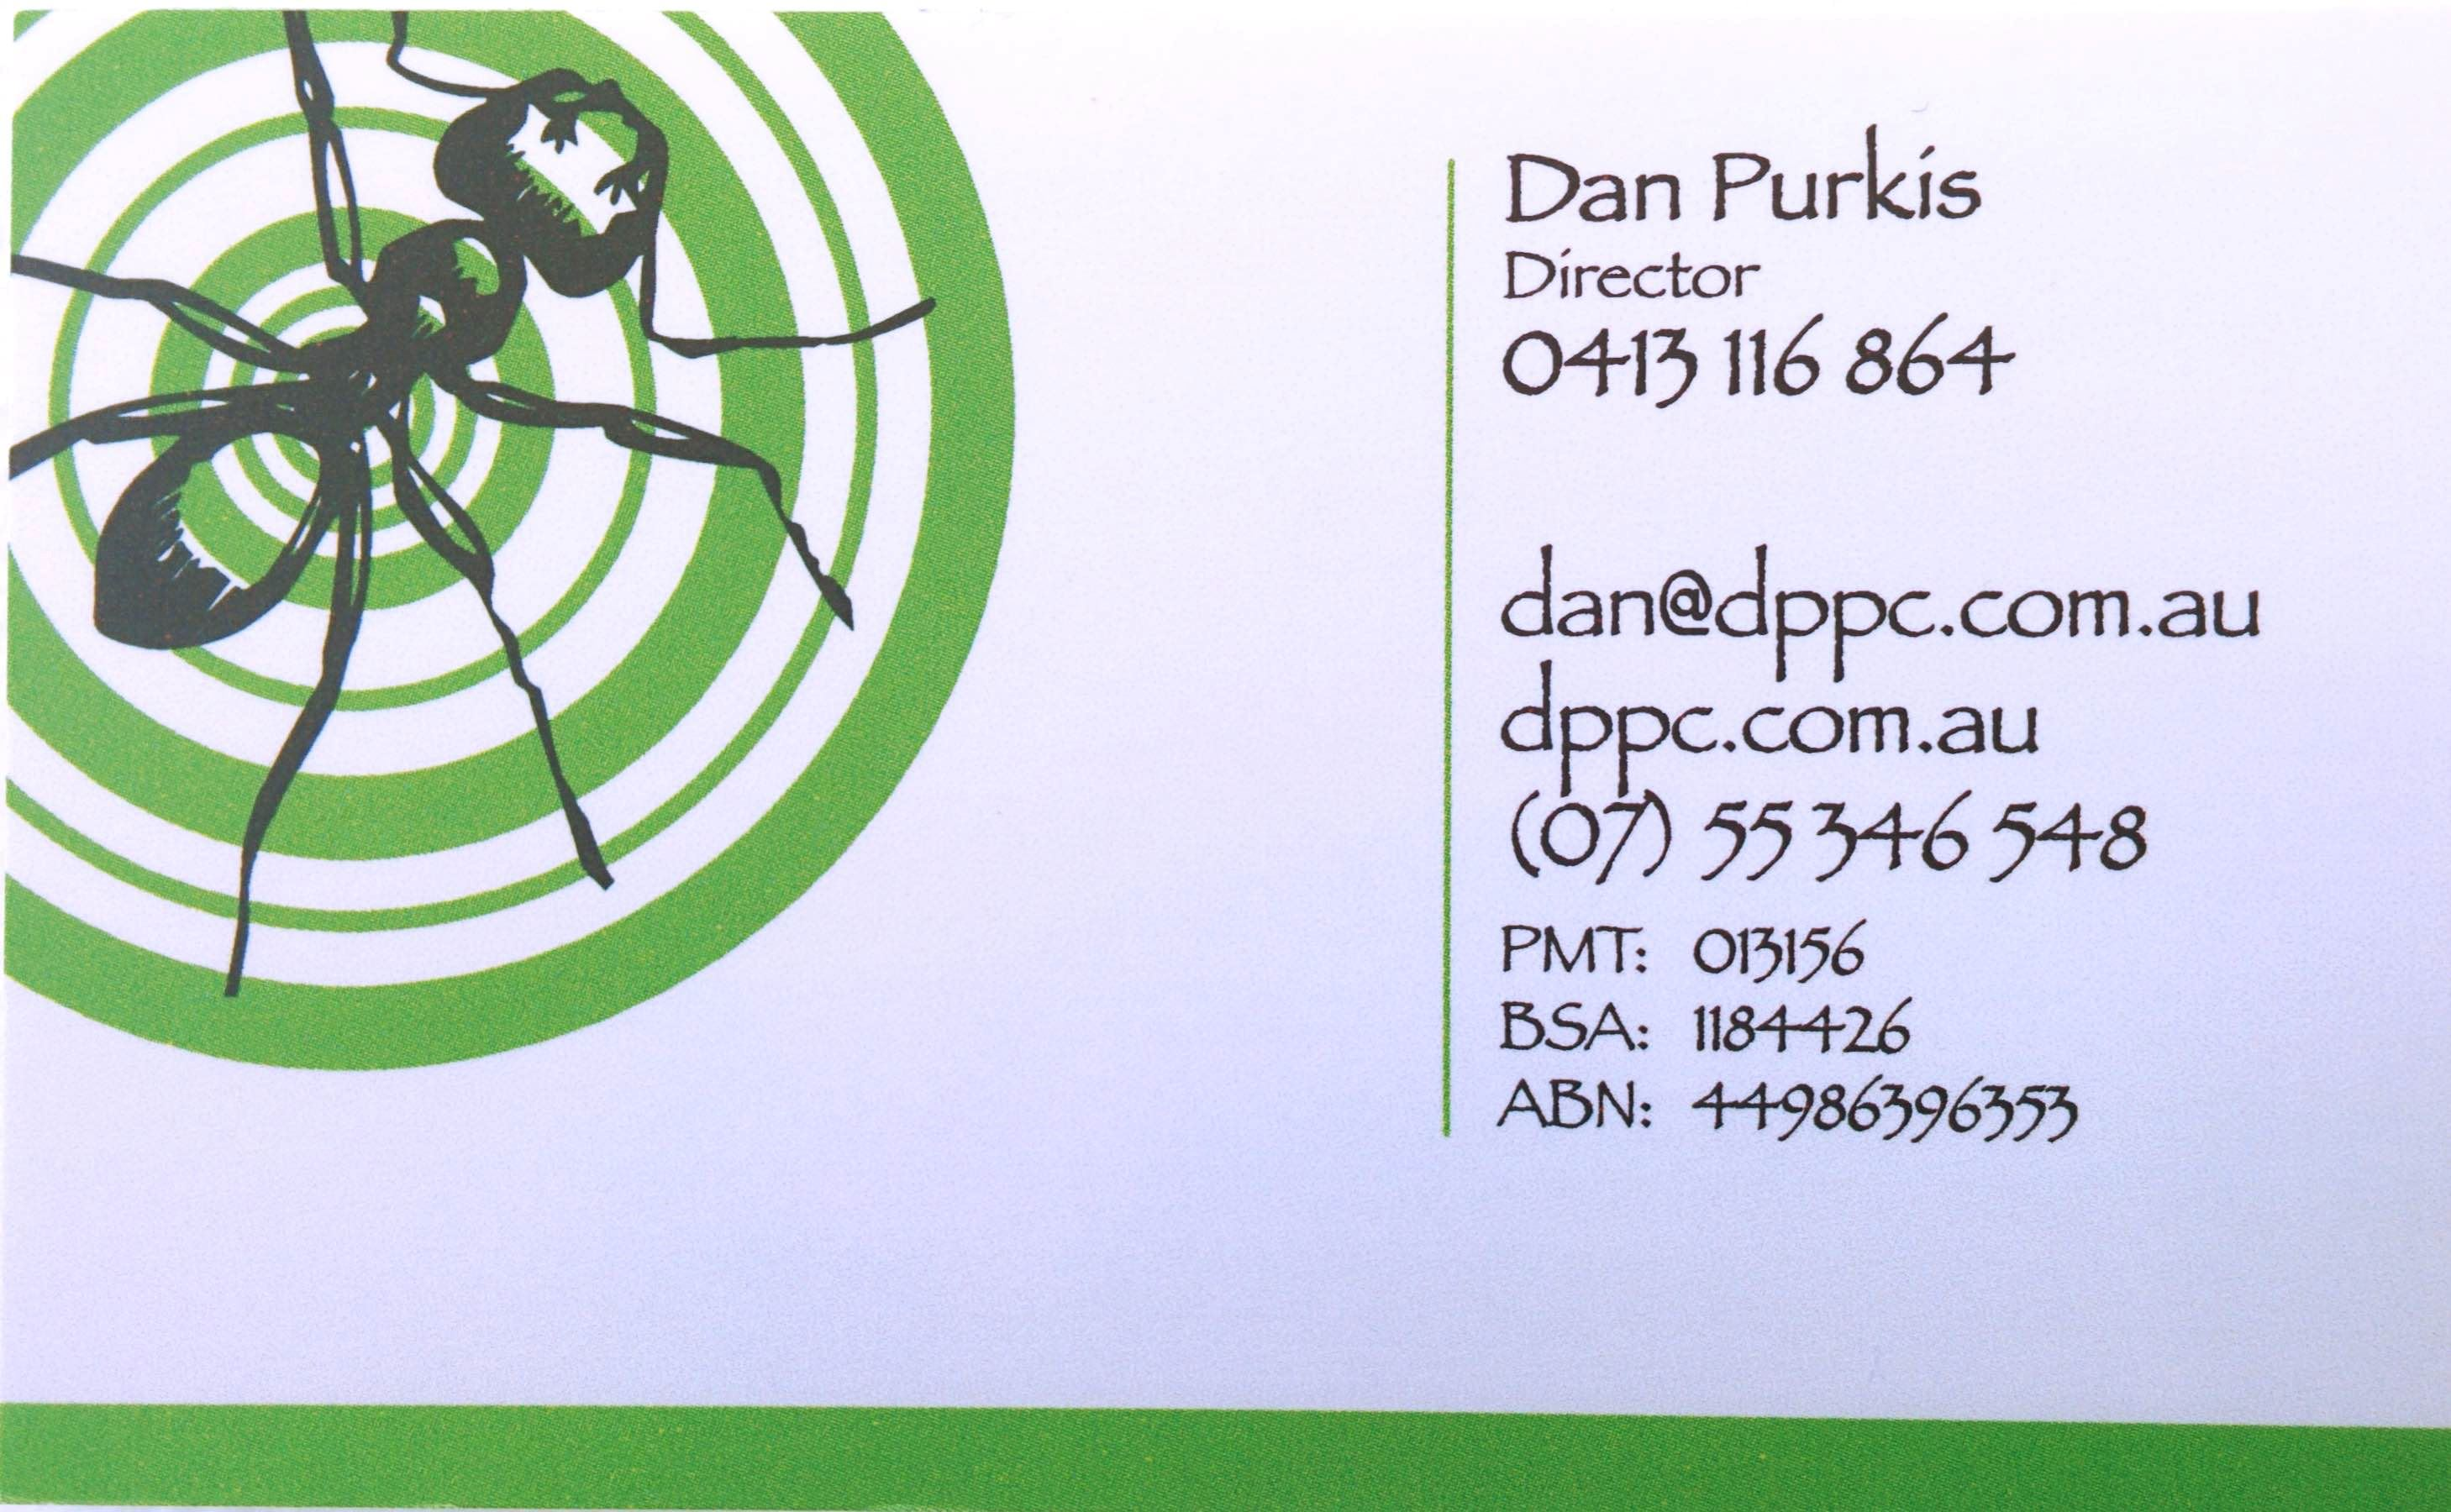 Dan Purkis Pest Control (Pre -Purchase Building & Pest Inspection)